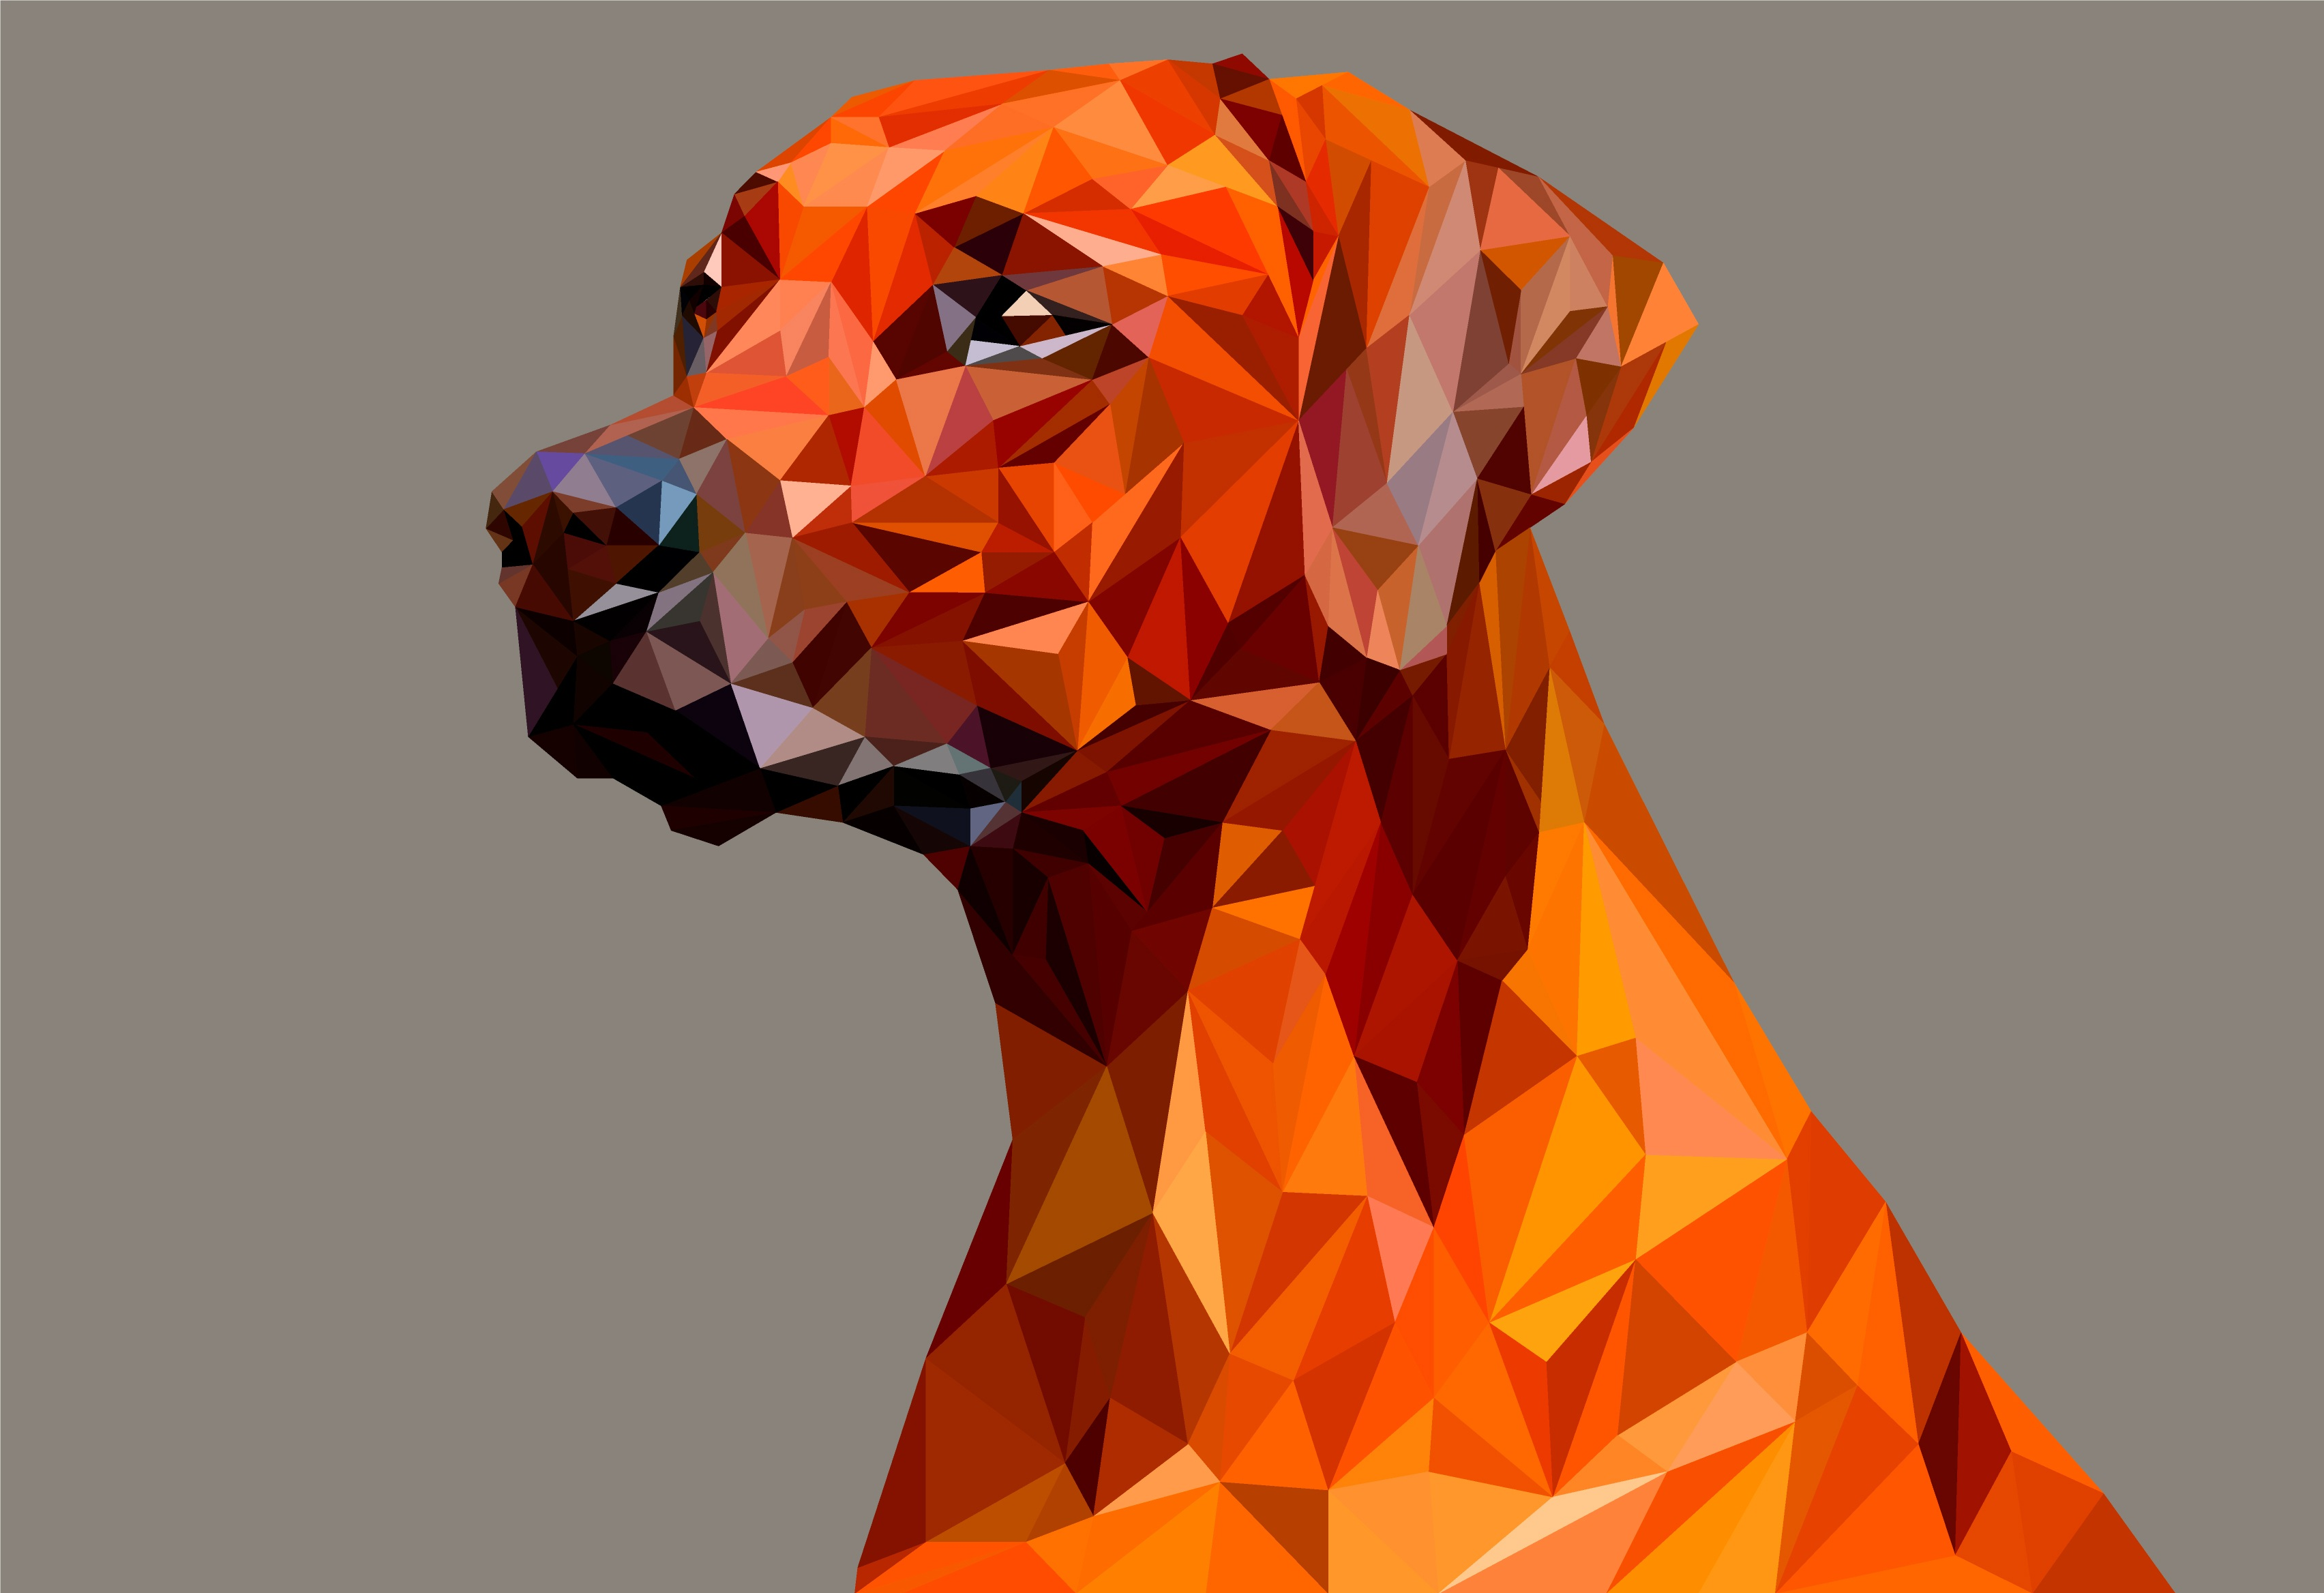 Dog Polygon Facets HD Abstract 4k Wallpapers Images Backgrounds